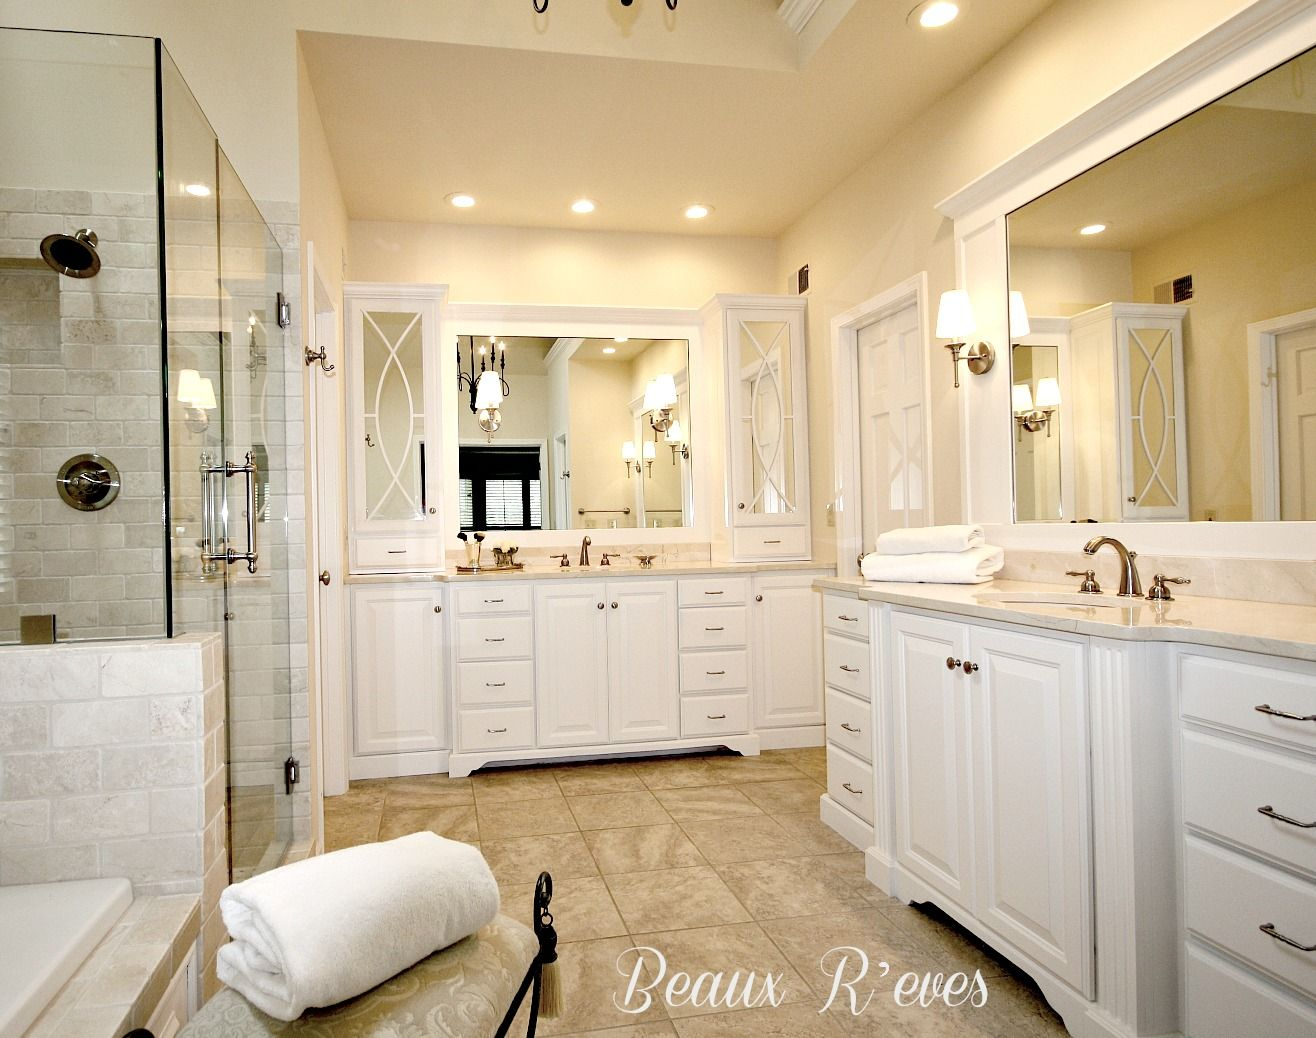 Bathroom Makeovers With White Cabinets beaux r'eves: glam master bath remodel | bathroom | pinterest